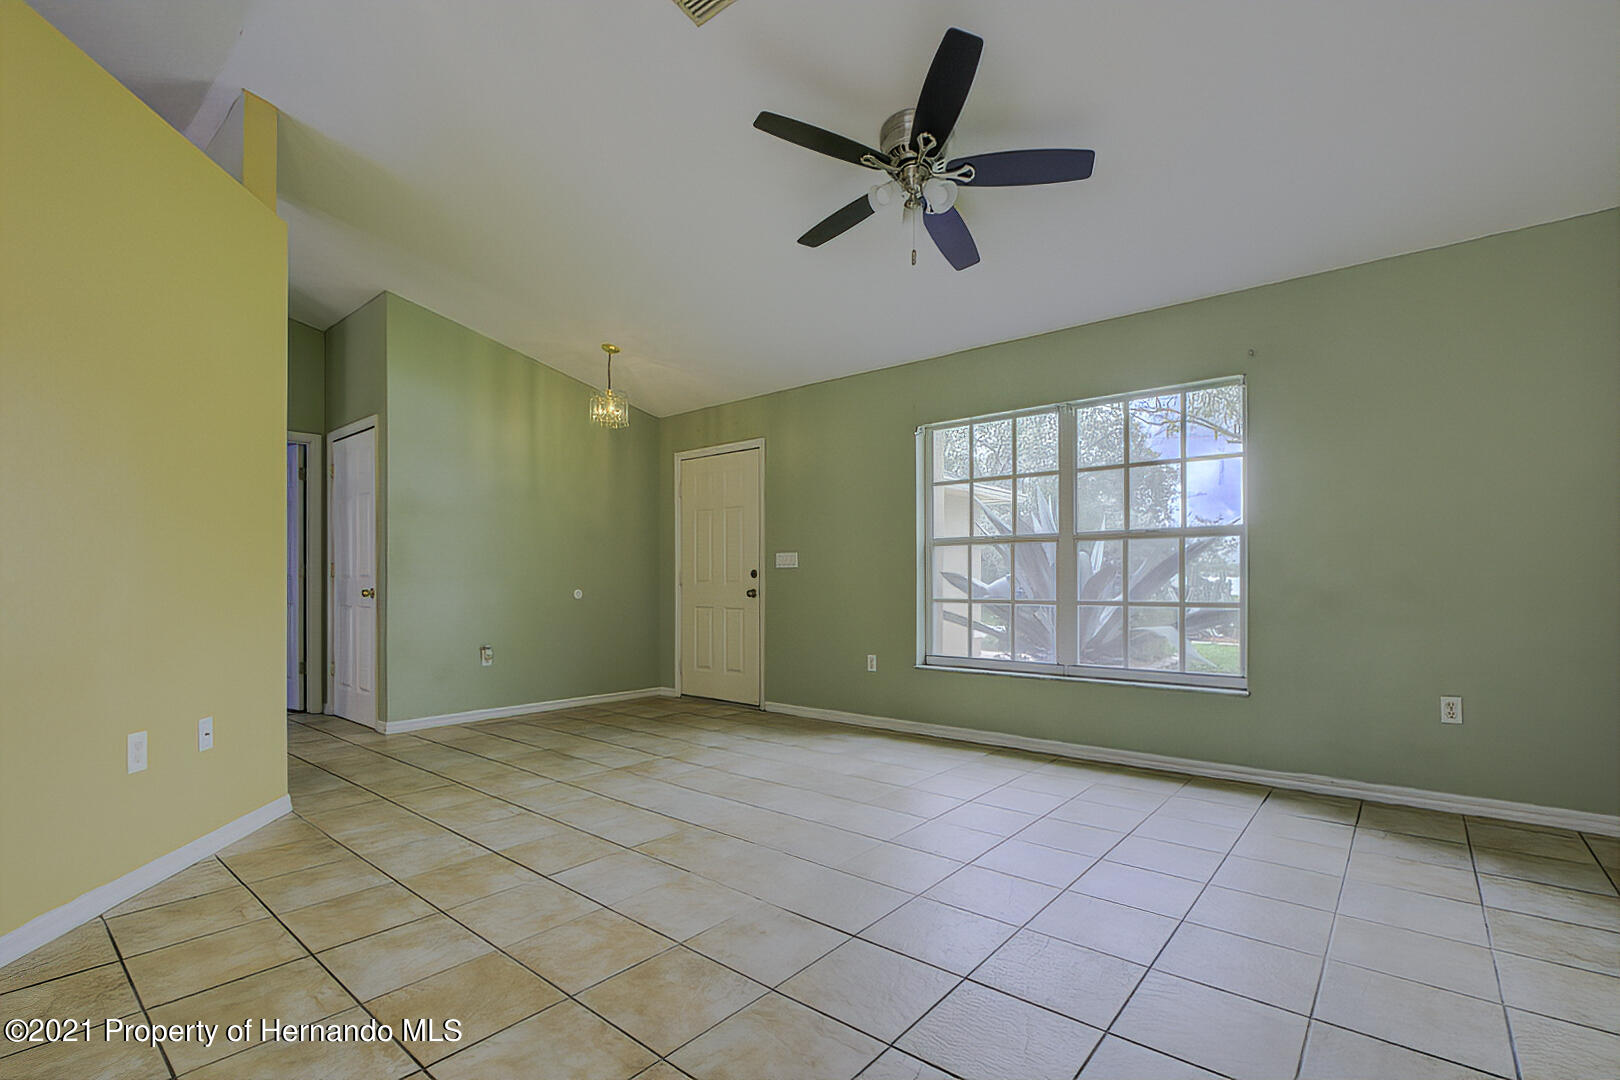 Image 3 of 27 For 12257 Genter Drive